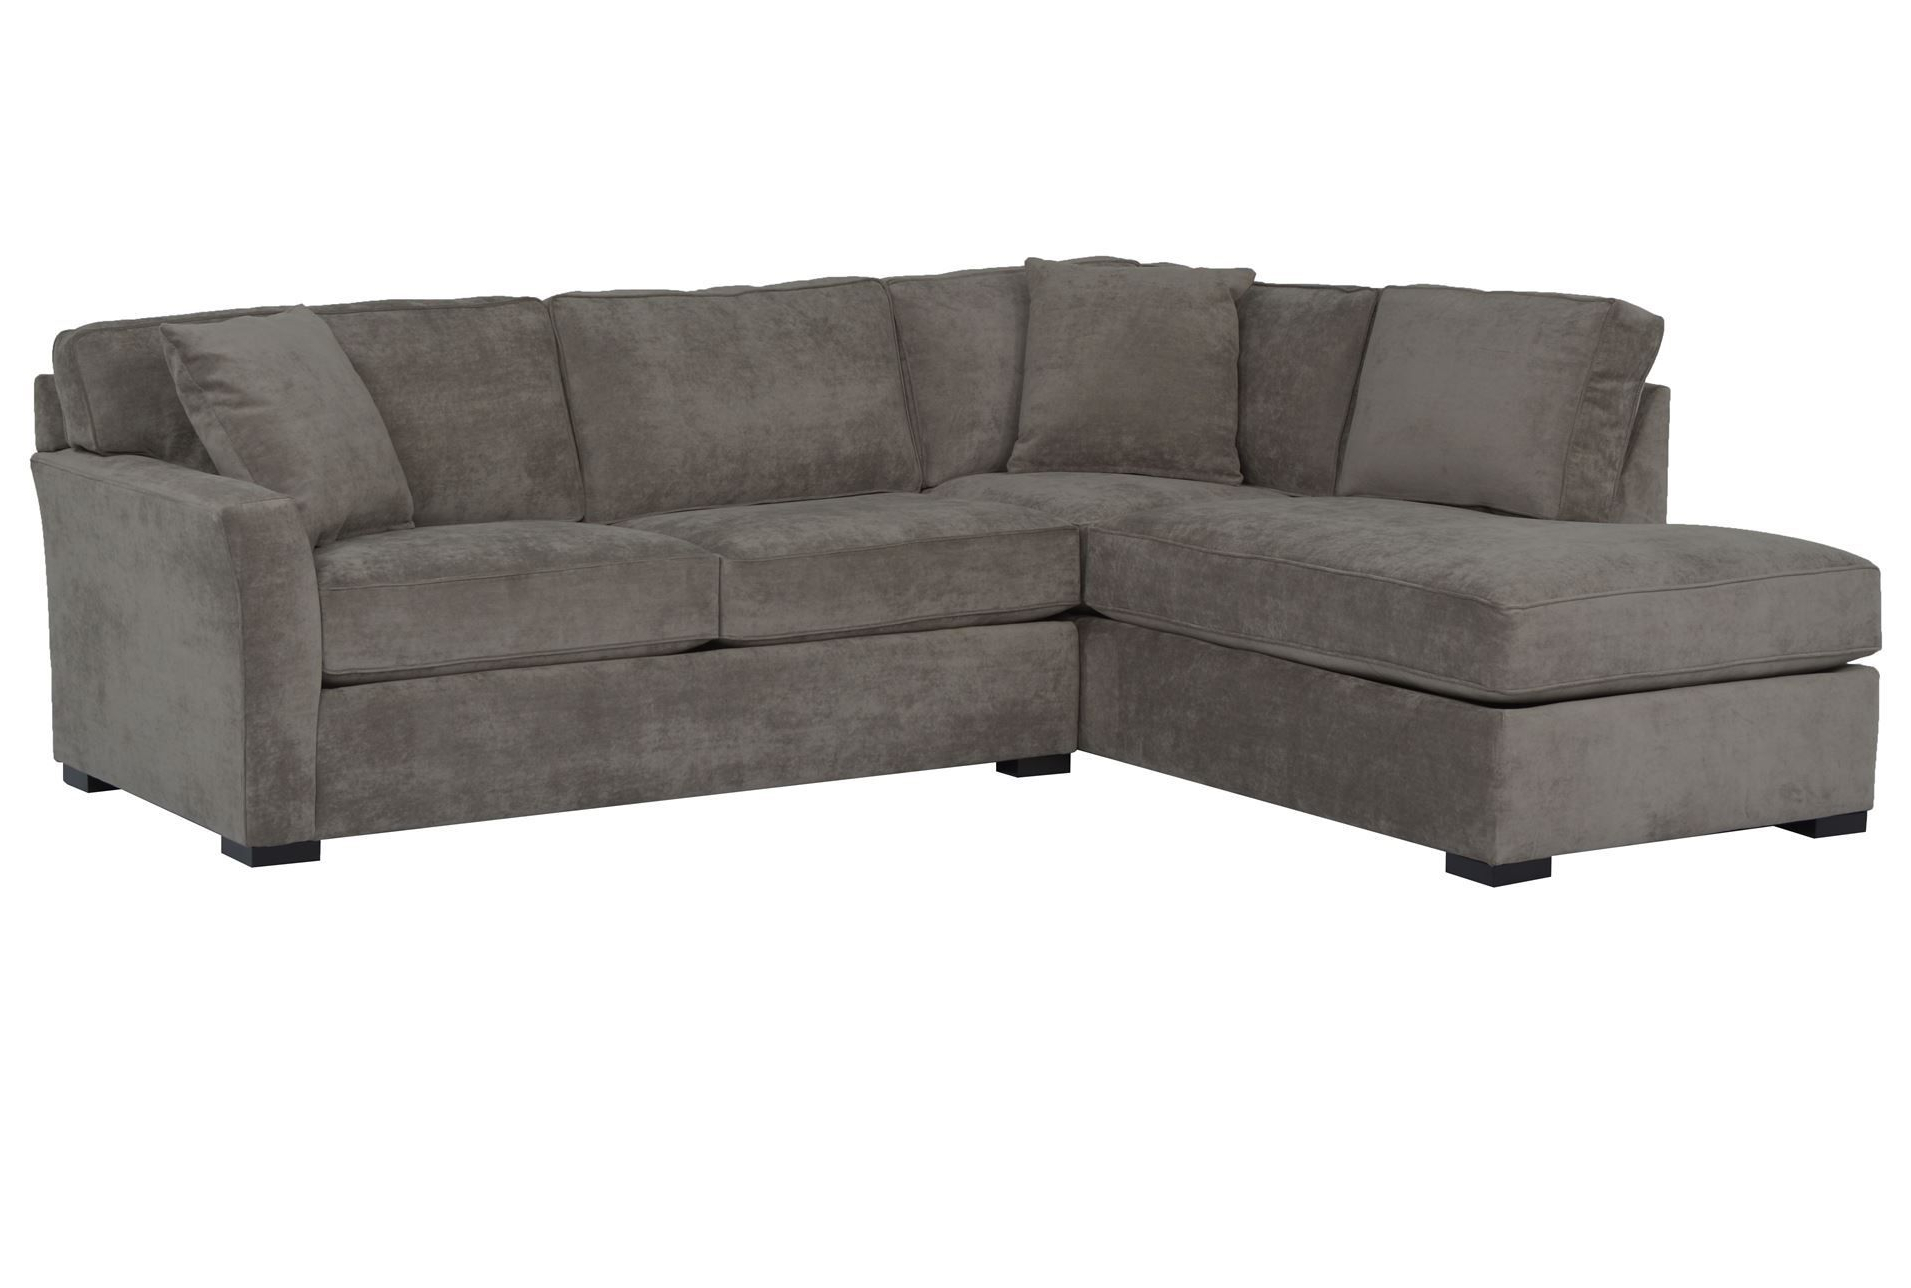 Aspen 2 Piece Sectionals With Raf Chaise Pertaining To Recent Aspen 2 Piece Sleeper Sectional W/laf Chaise (Gallery 10 of 20)